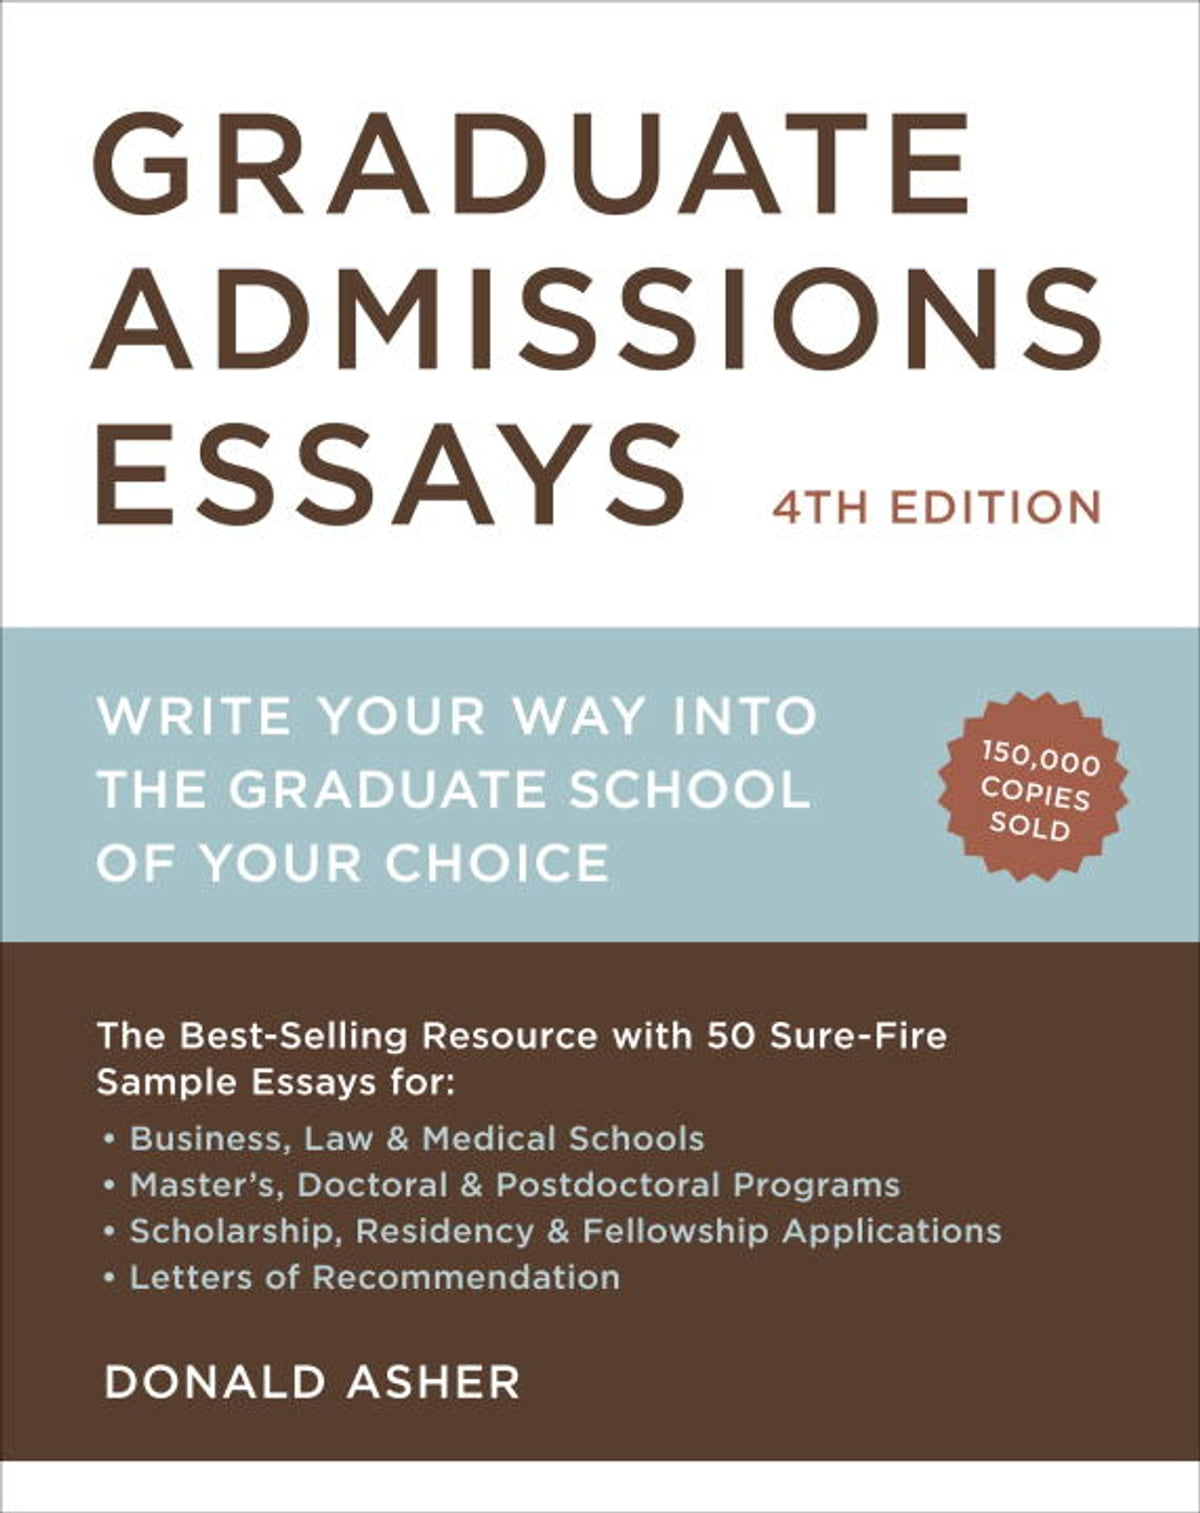 graduate admissions essays fourth edition ebook by donald asher graduate admissions essays fourth edition ebook by donald asher 9781607743224 kobo